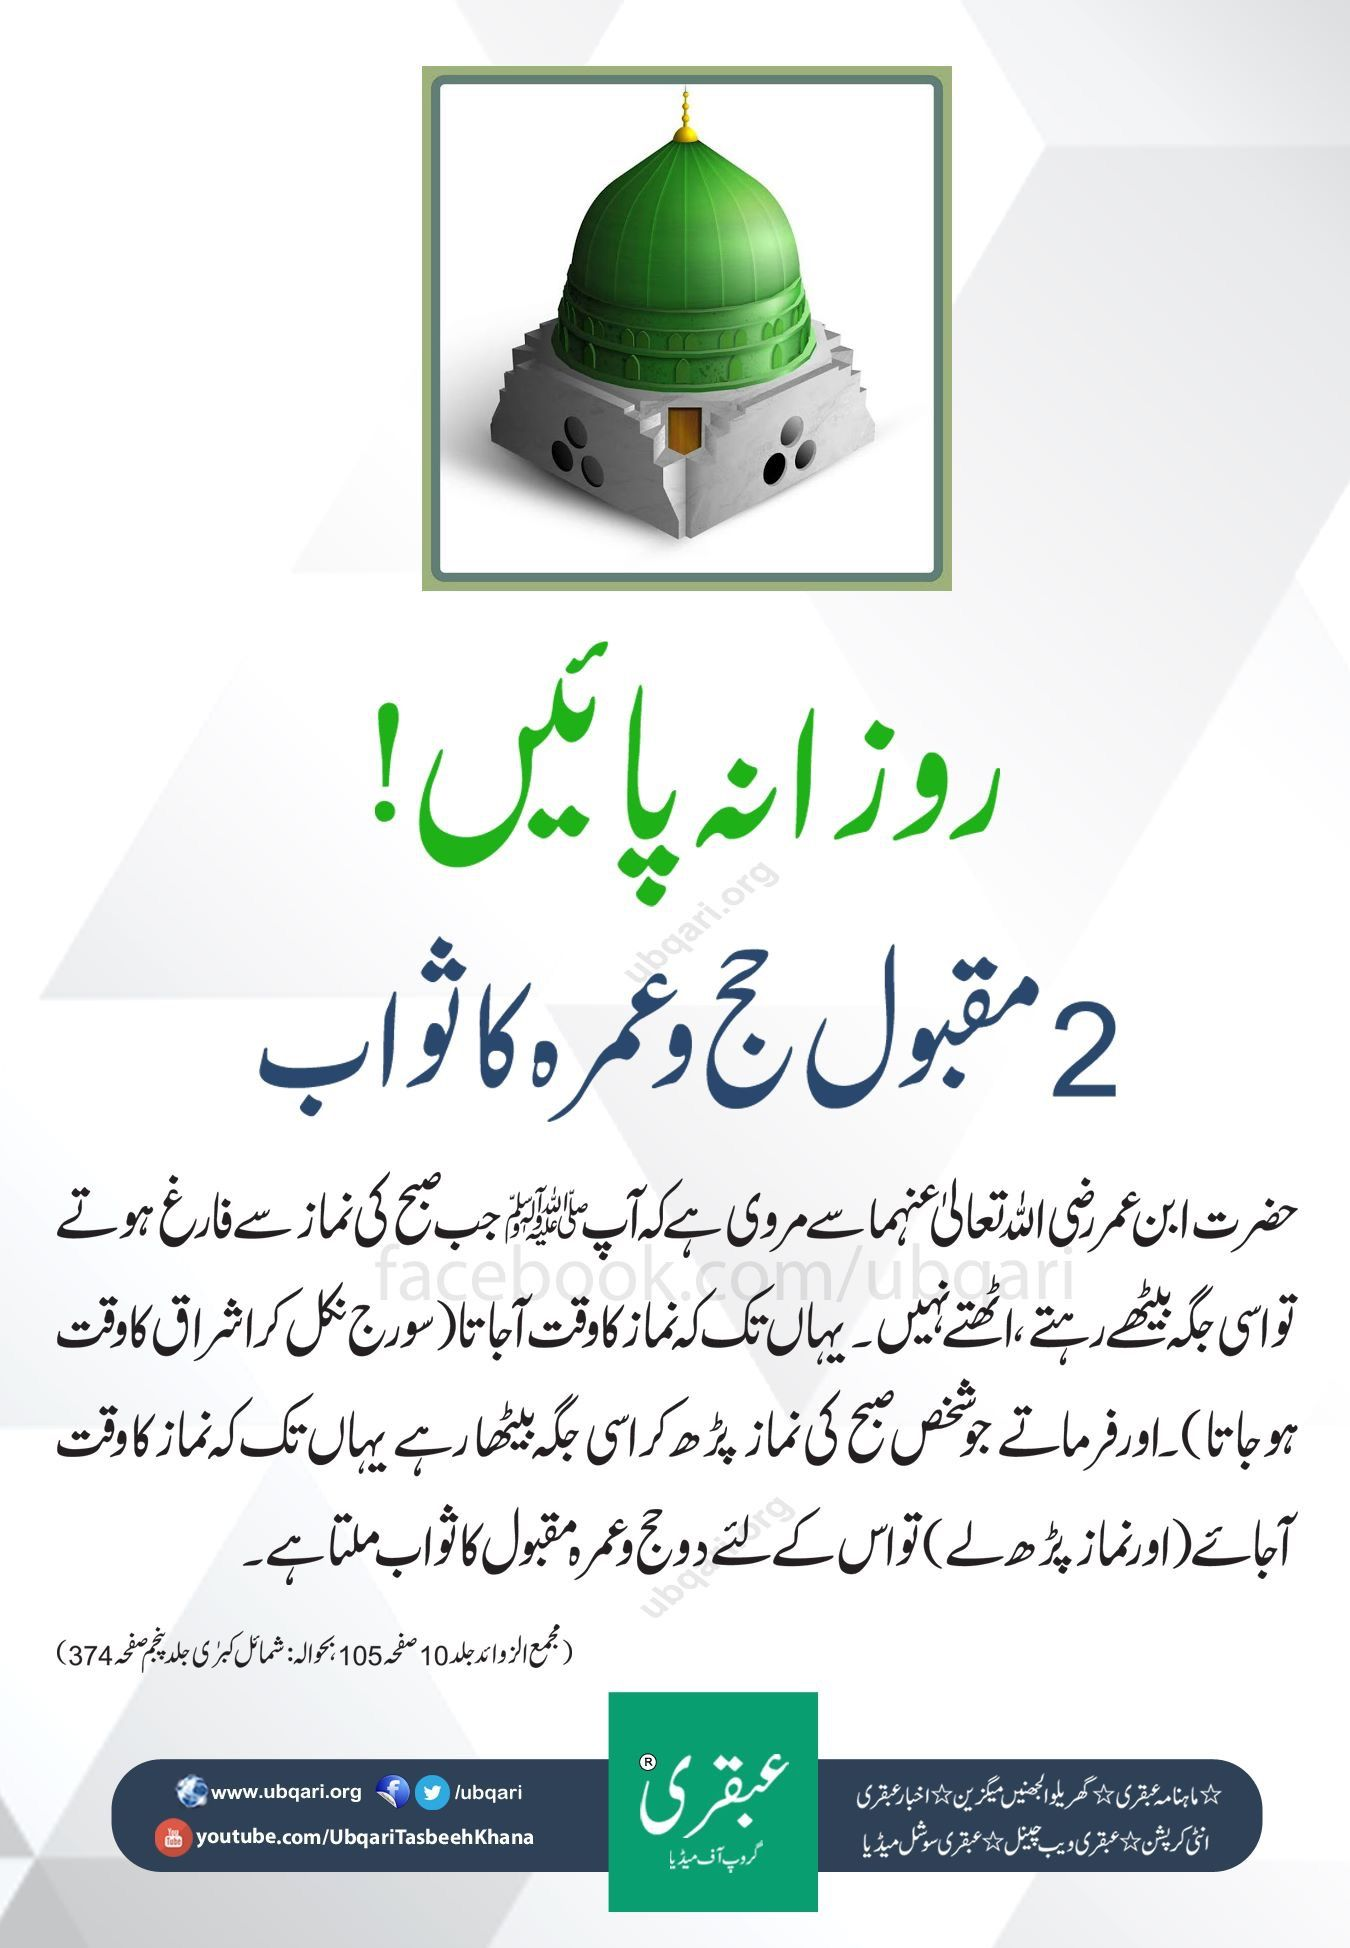 Pin By Drnazesh Tauqeer On Health Remedies Hadith Quotes Beautiful Names Of Allah Ahadith